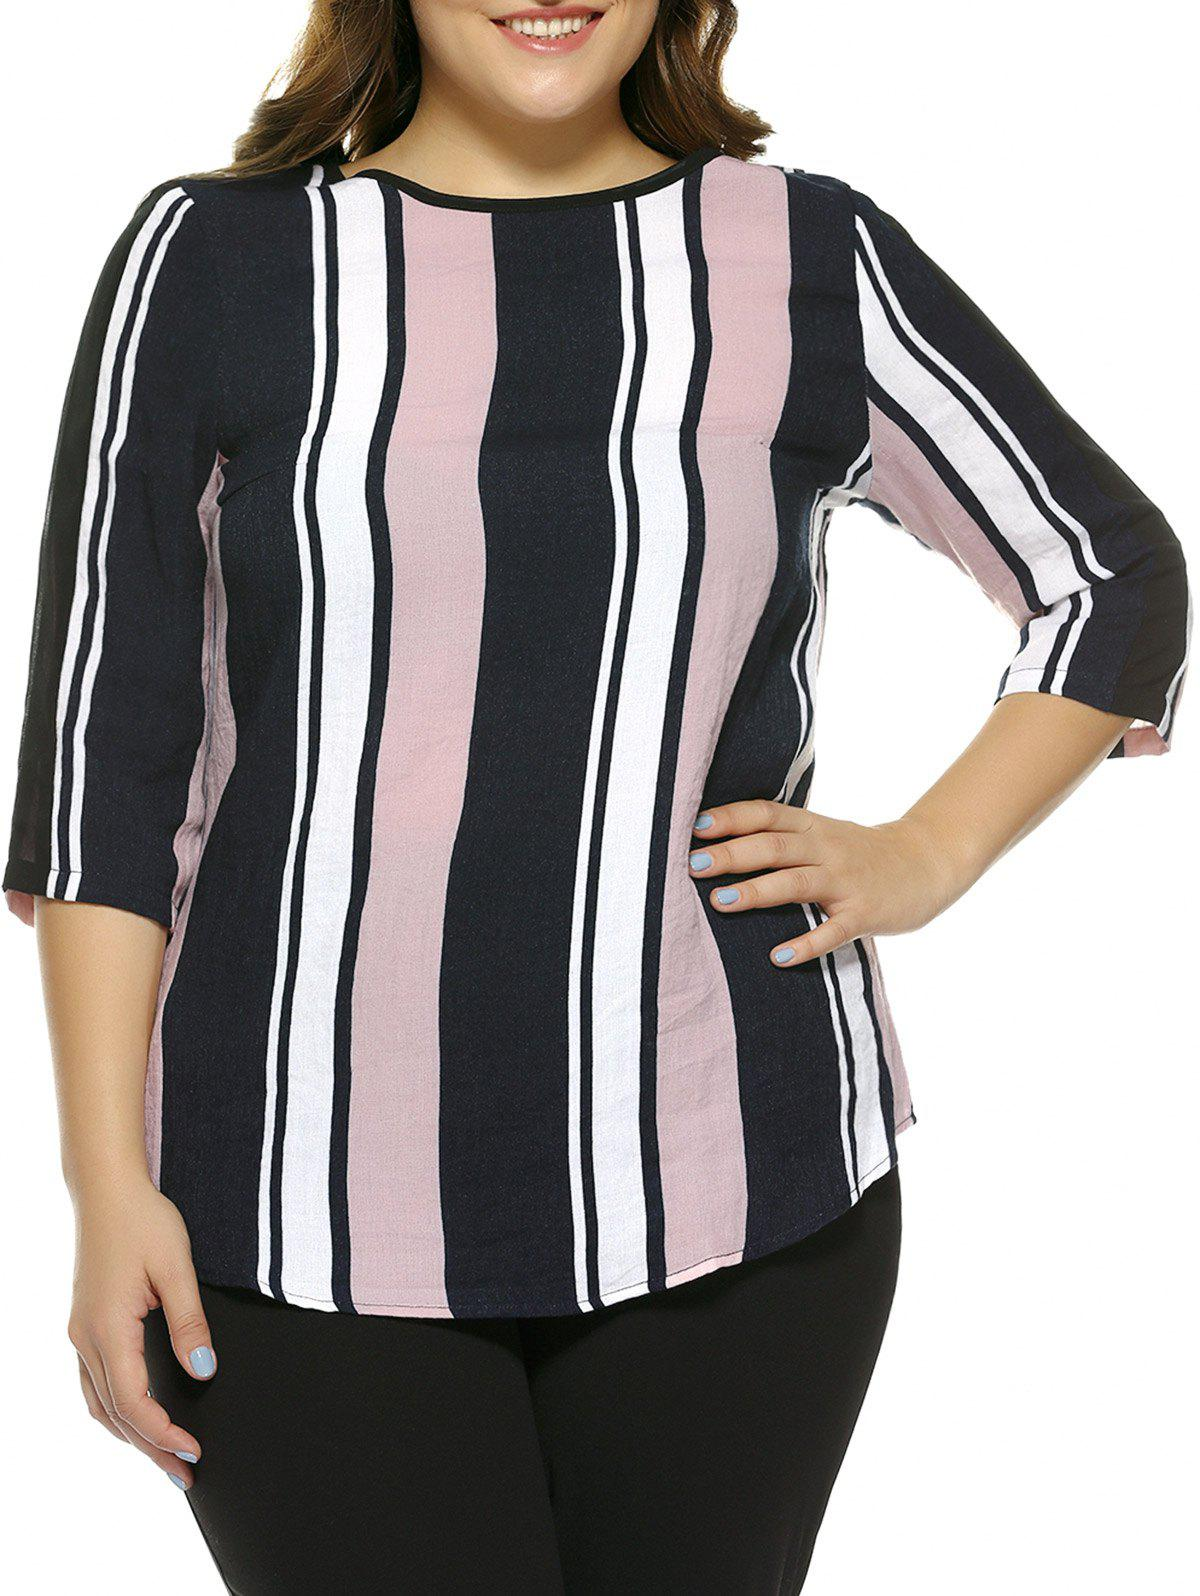 Oversized Charming Color Block Stripe Blouse - STRIPE 5XL